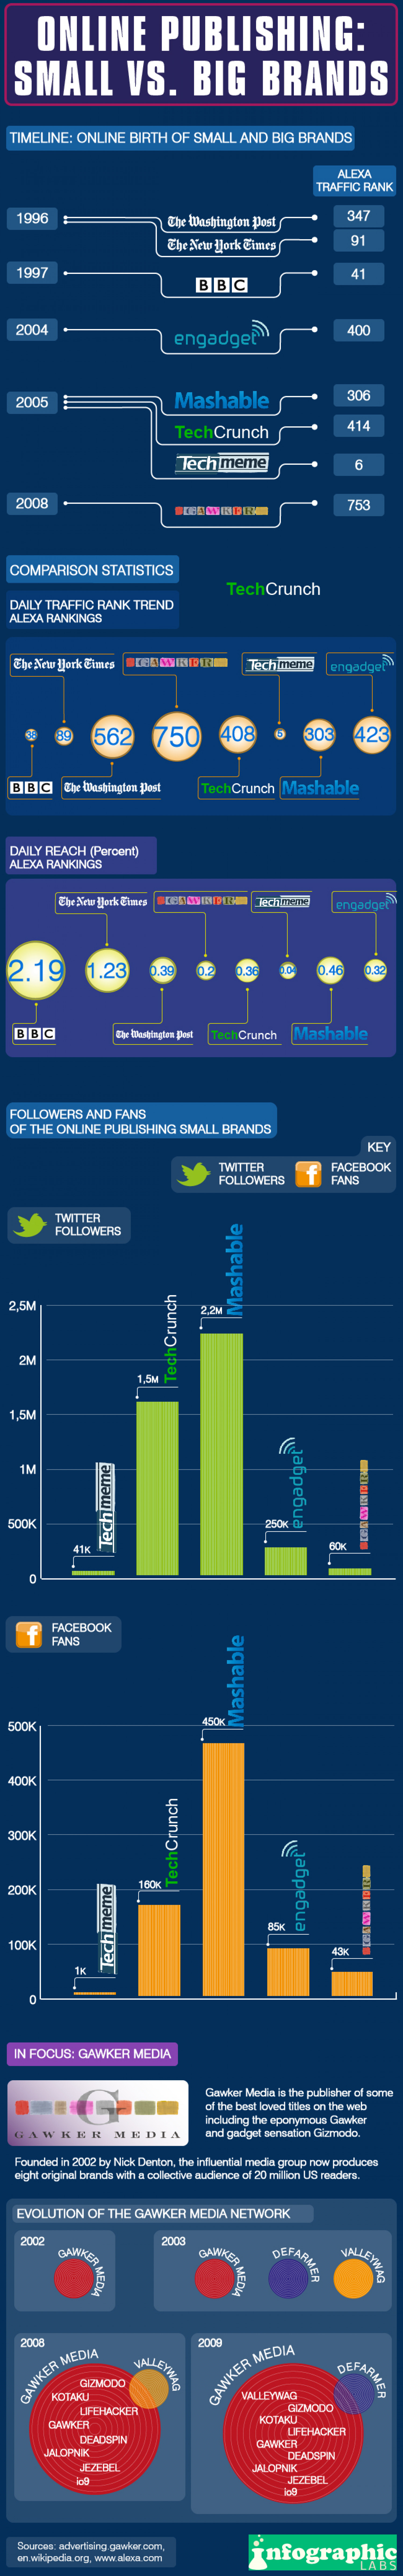 Online Publishing: Small vs Big Brands Infographic